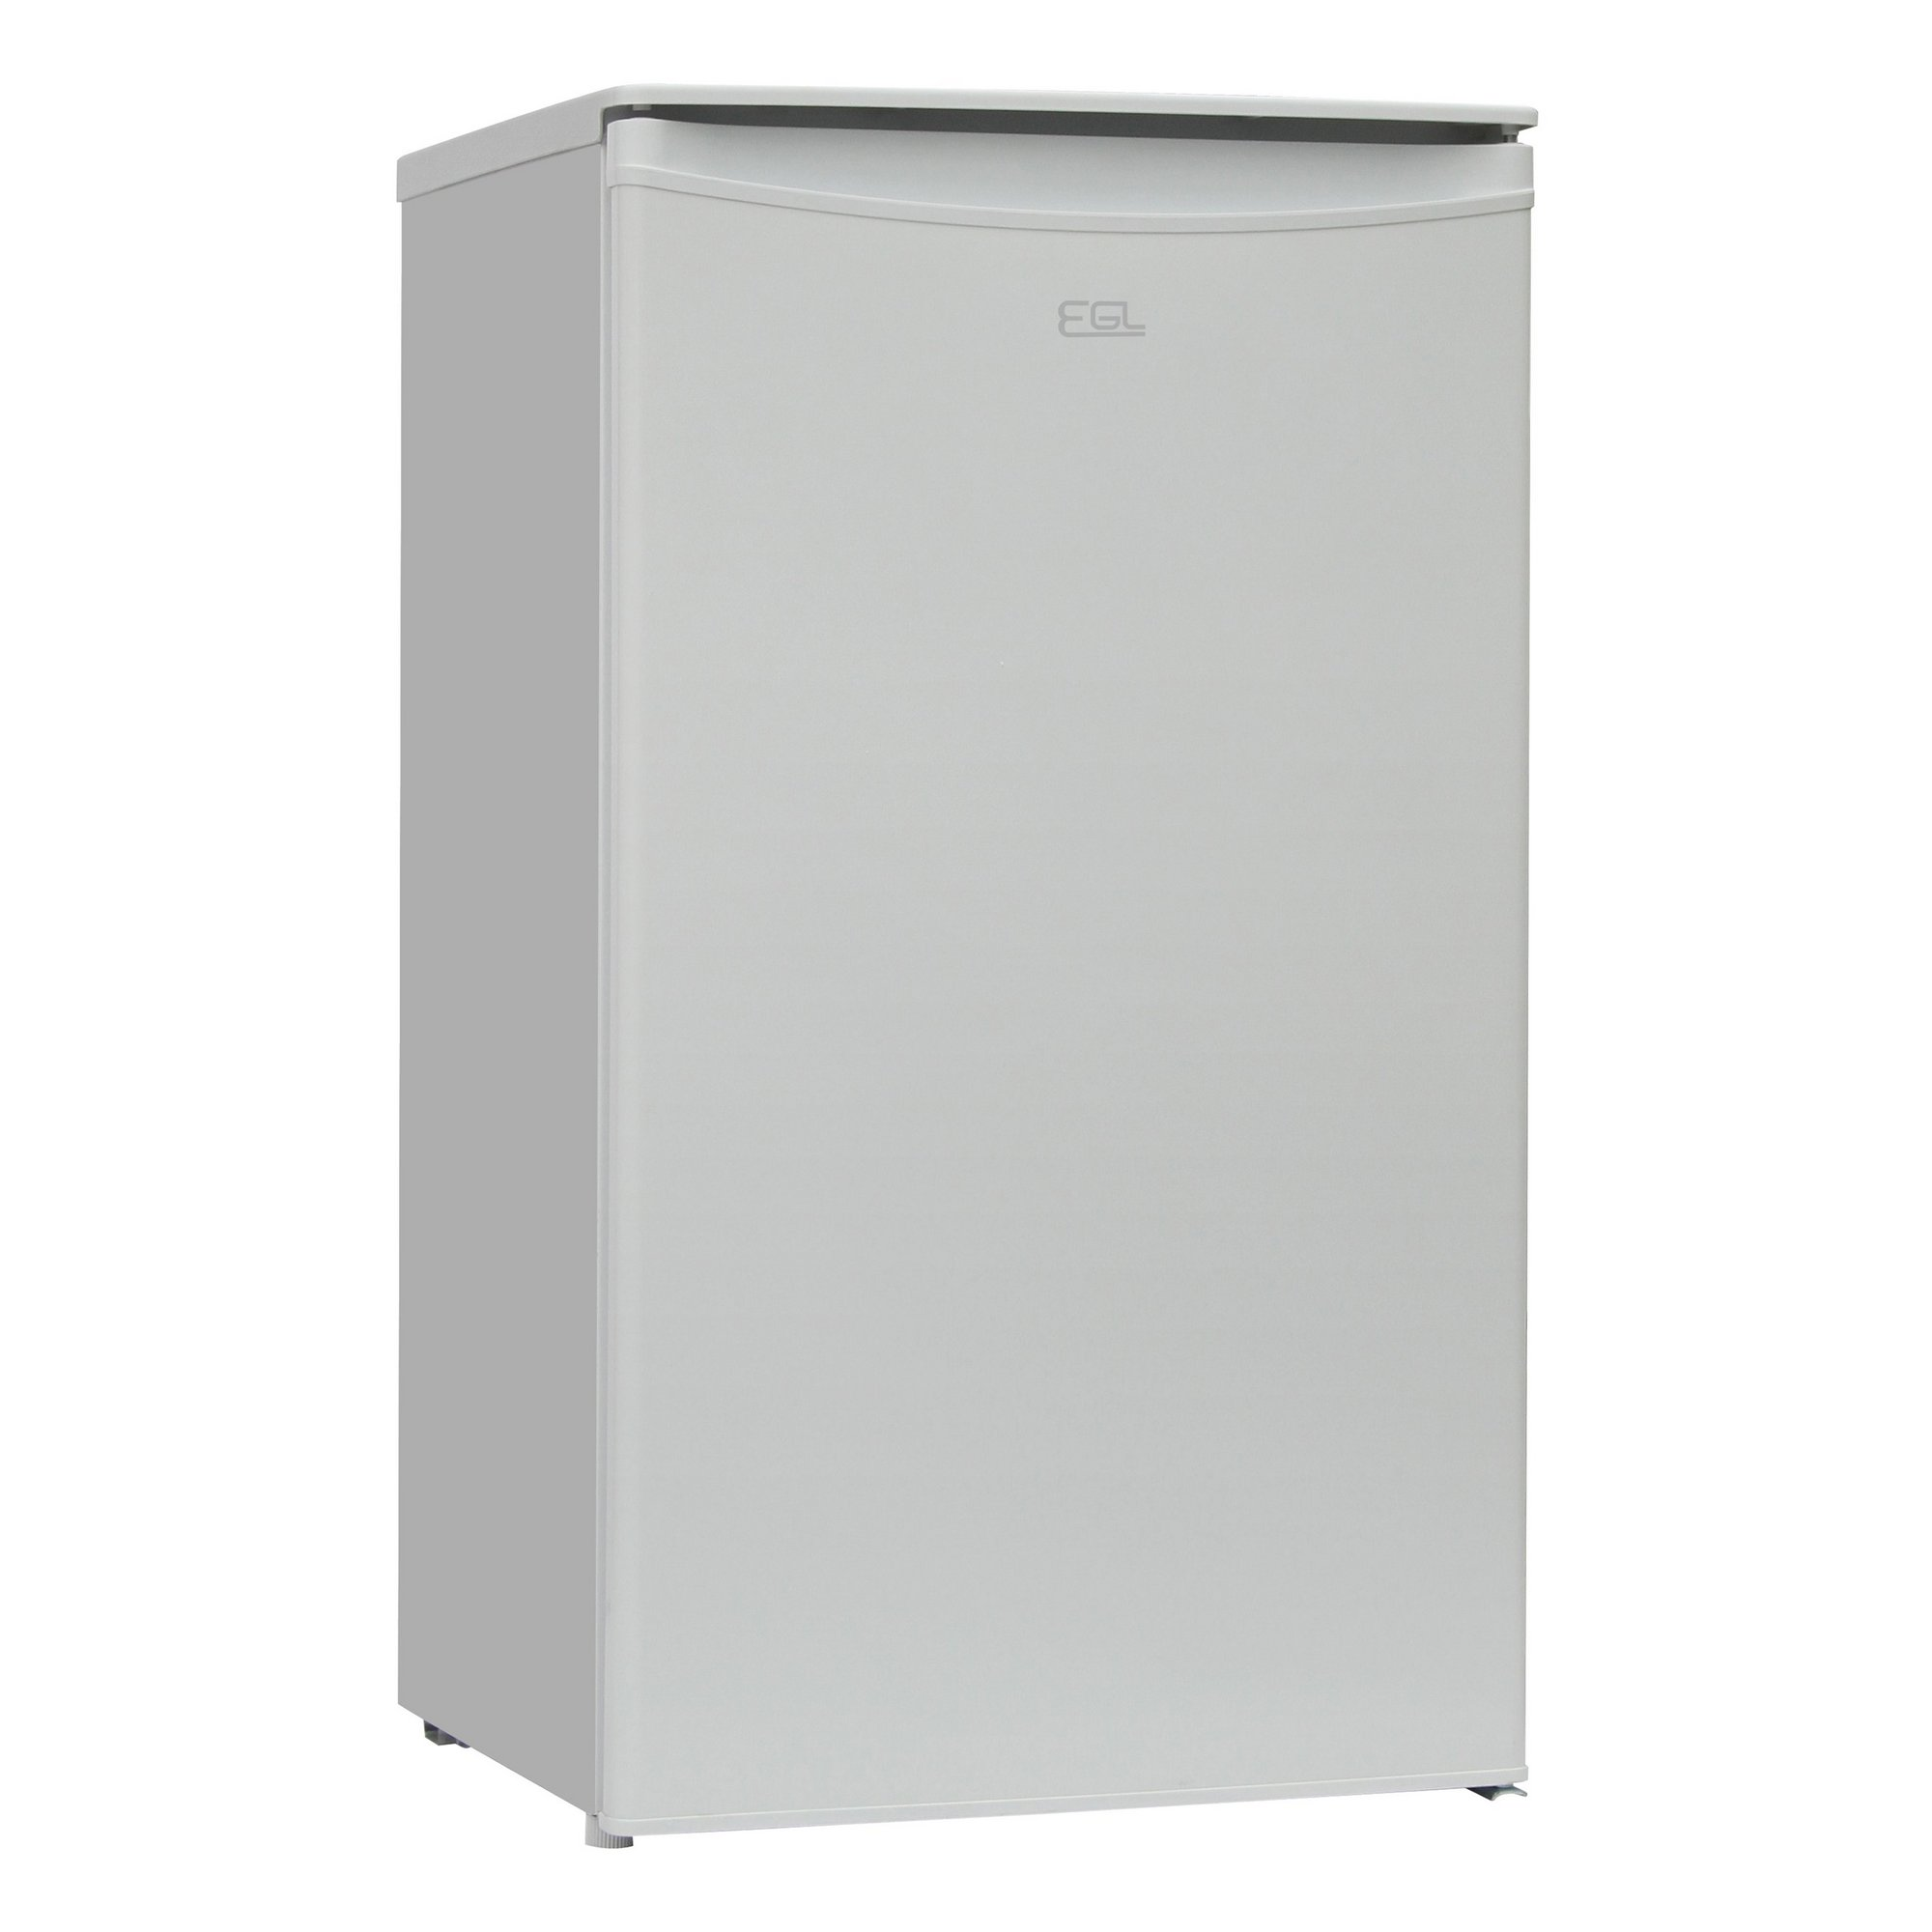 Image of 90L Under Counter Refrigerator with Chiller